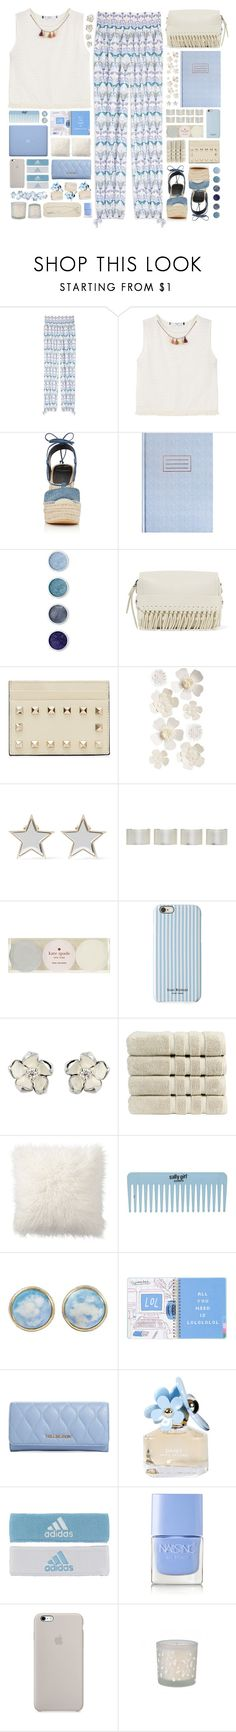 """""""2163 // V a n o x i t e"""" by arierrefatir ❤ liked on Polyvore featuring Tory Burch, MANGO, Yves Saint Laurent, Terre Mère, 3.1 Phillip Lim, Valentino, Givenchy, Maison Margiela, Kate Spade and Isaac Mizrahi"""